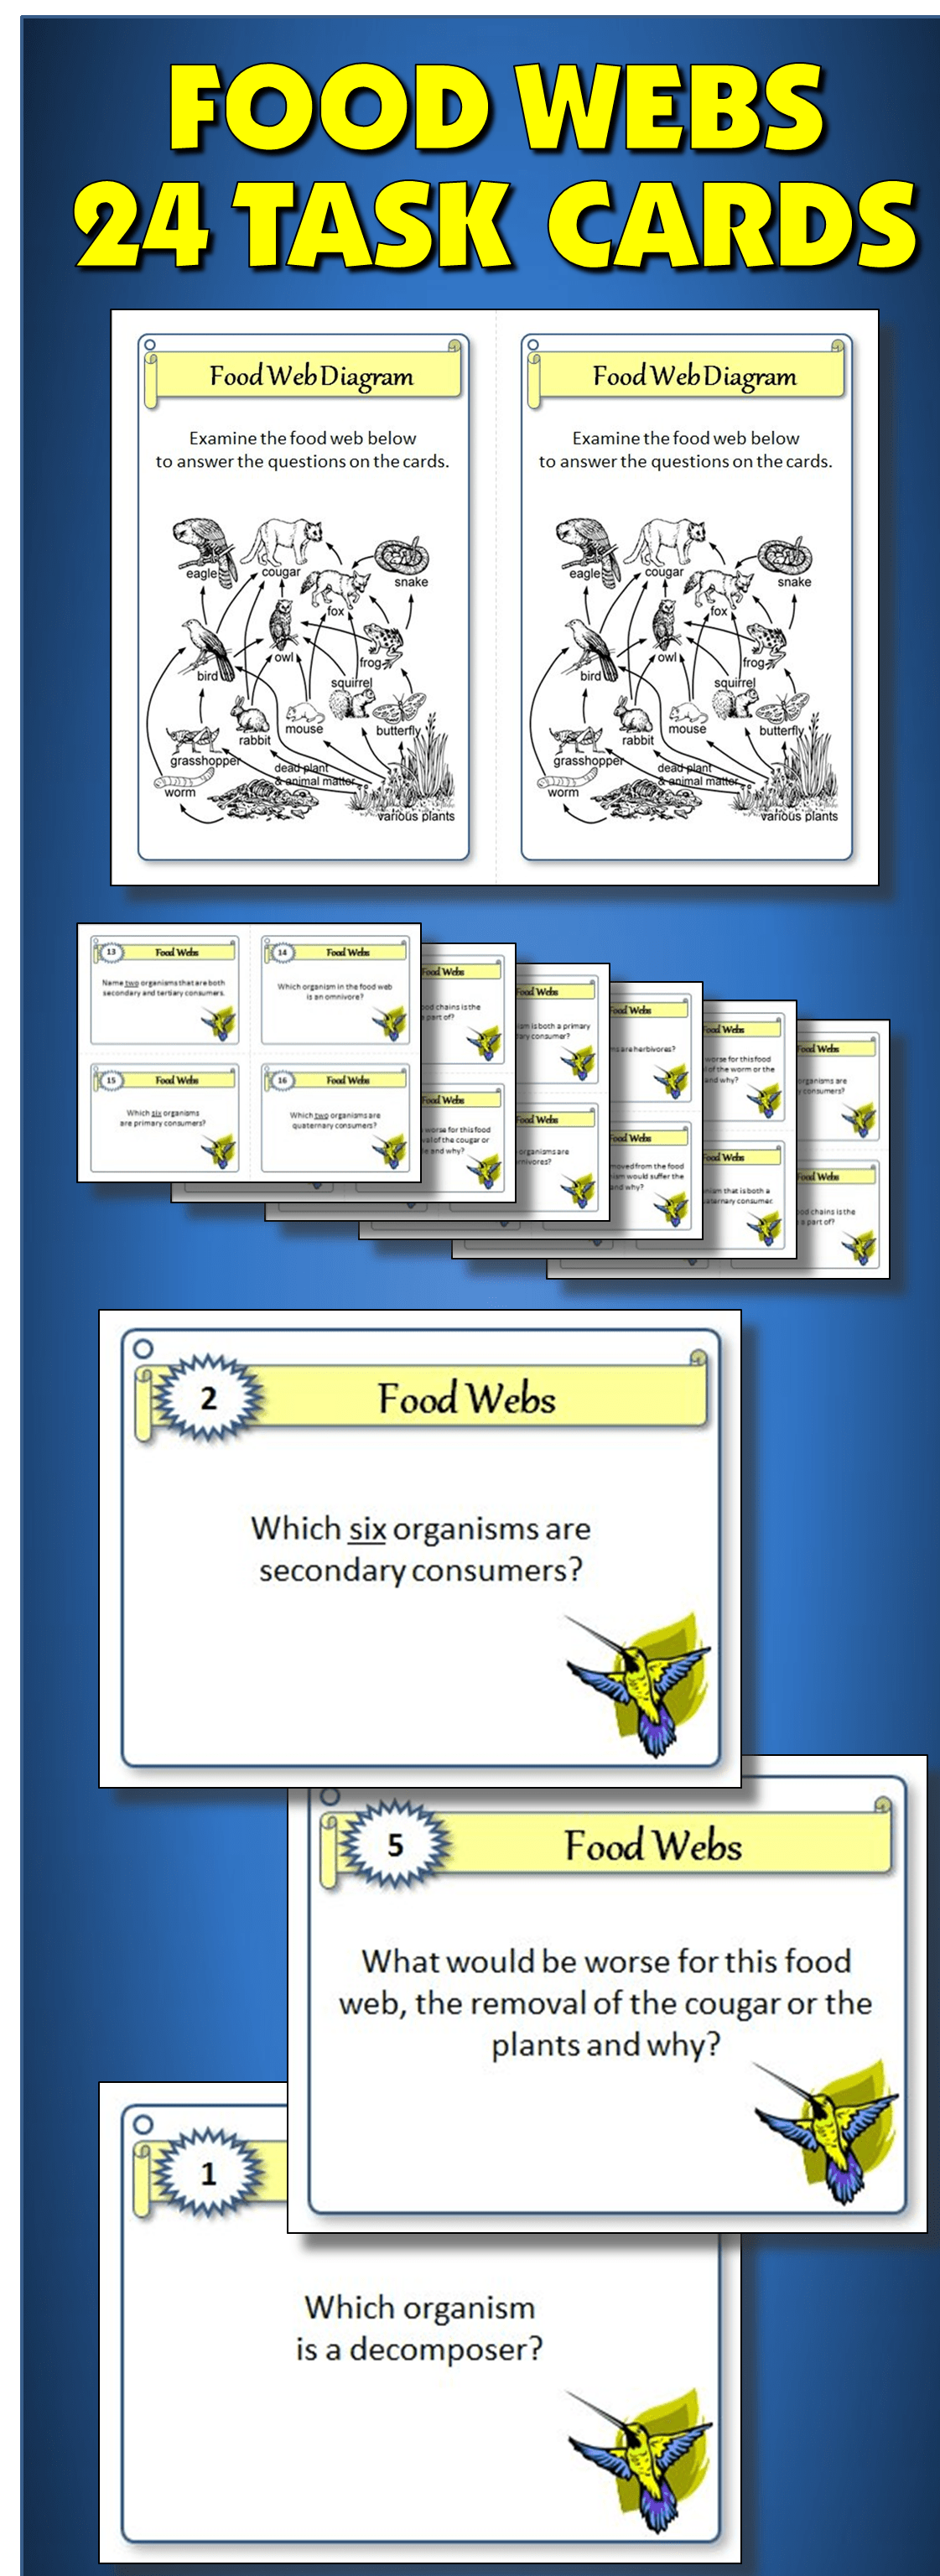 Food Webs Task Cards With Editable Template